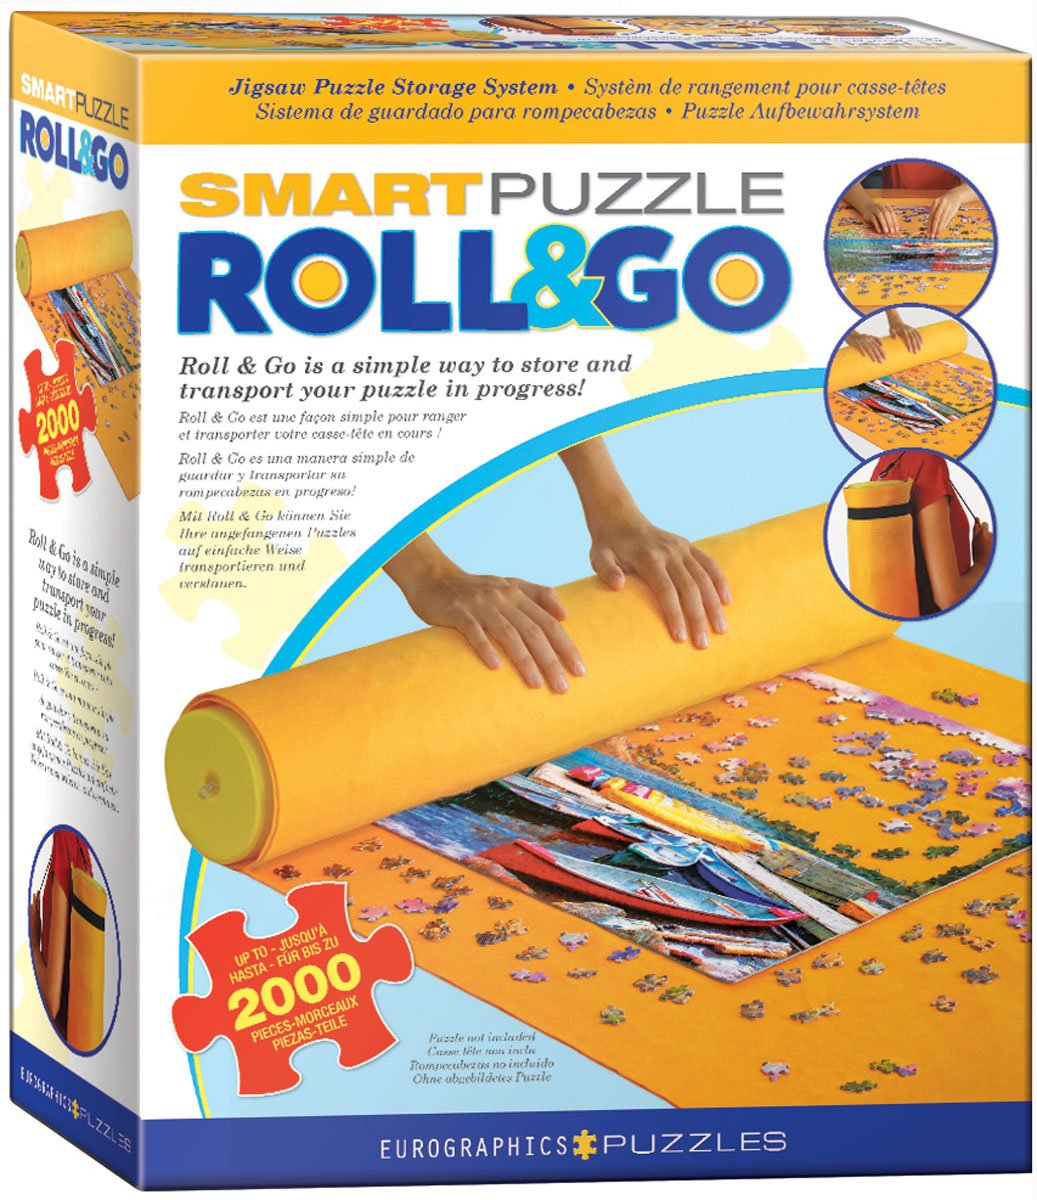 Eurographics' Smart Puzzle: Roll & Go (Up to 2000pc)